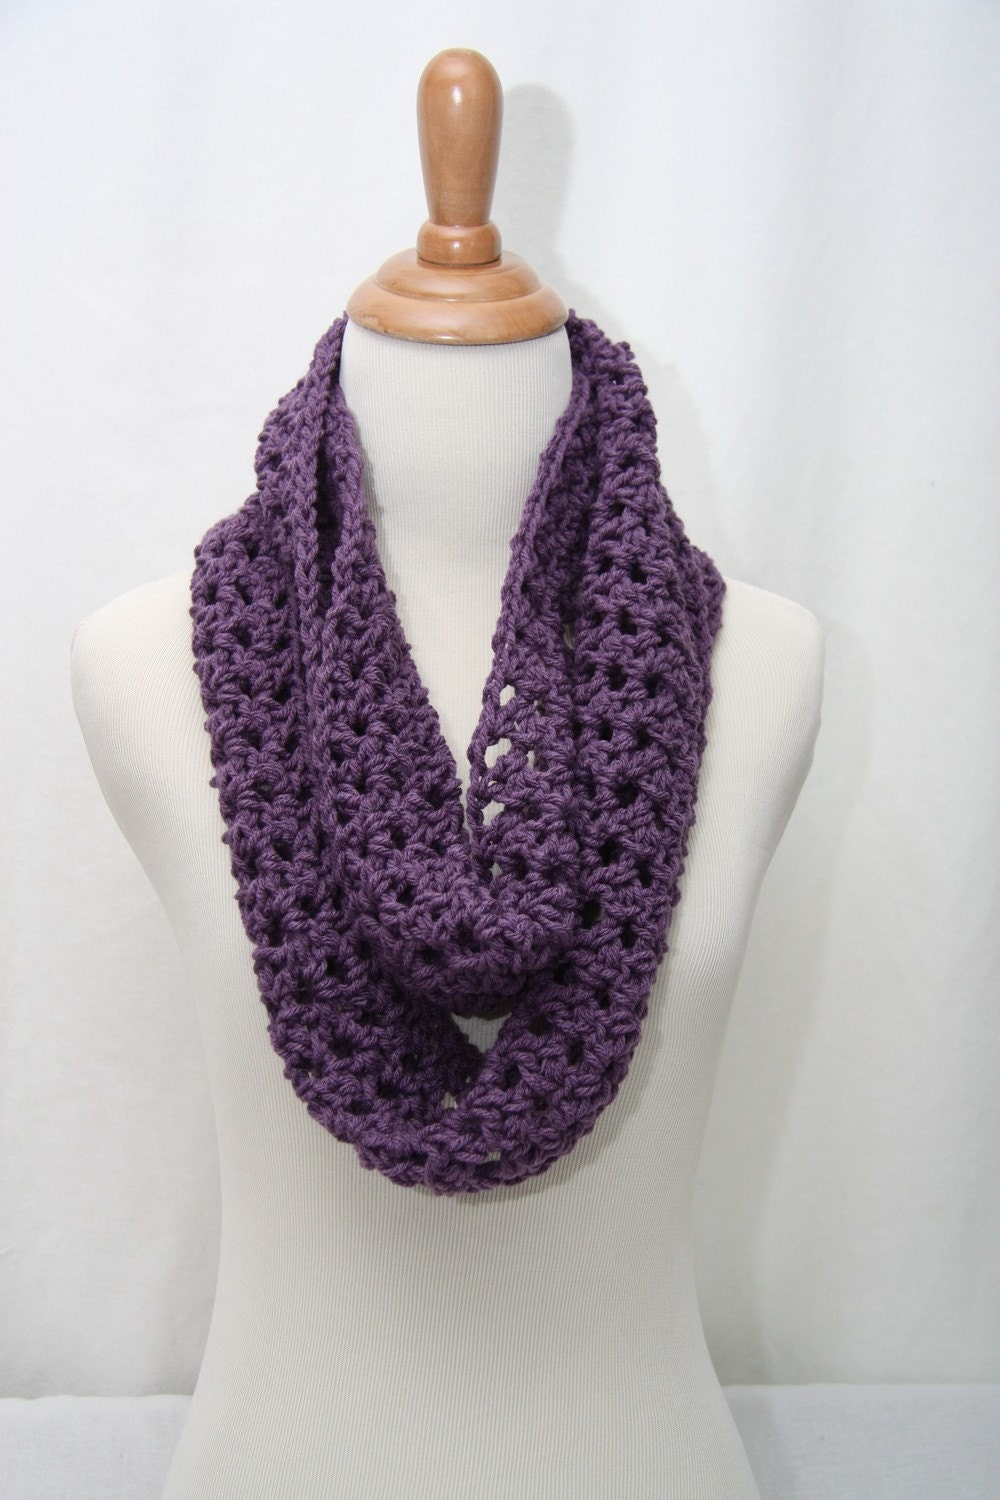 Crochet Patterns Neck Scarves : Crochet Cowl Neck Scarf Aqua Purple And Black By Shiara On ...